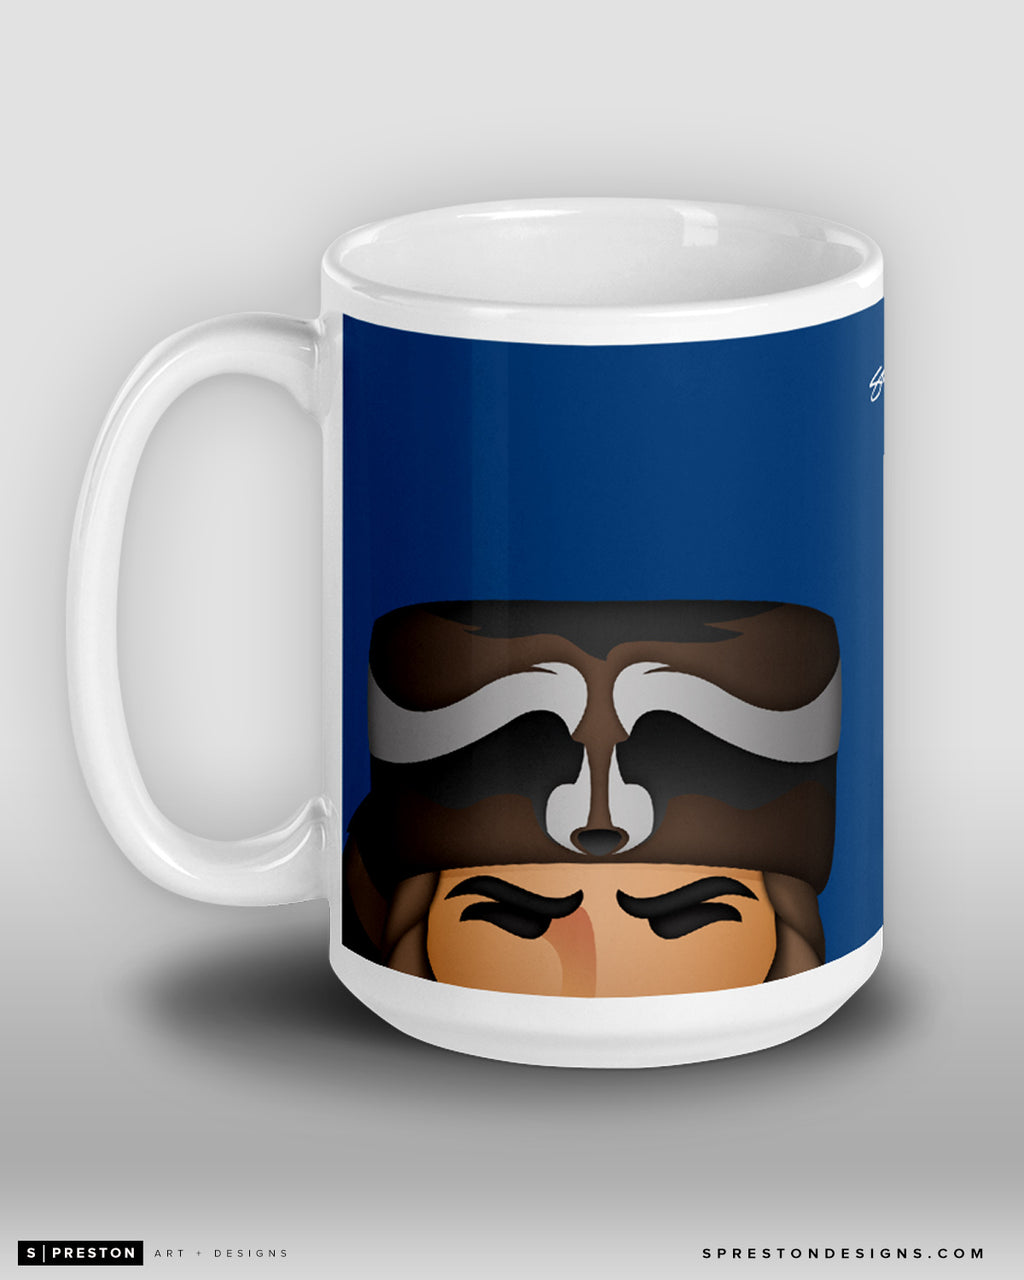 Minimalist The Mountaineer Coffee Mug